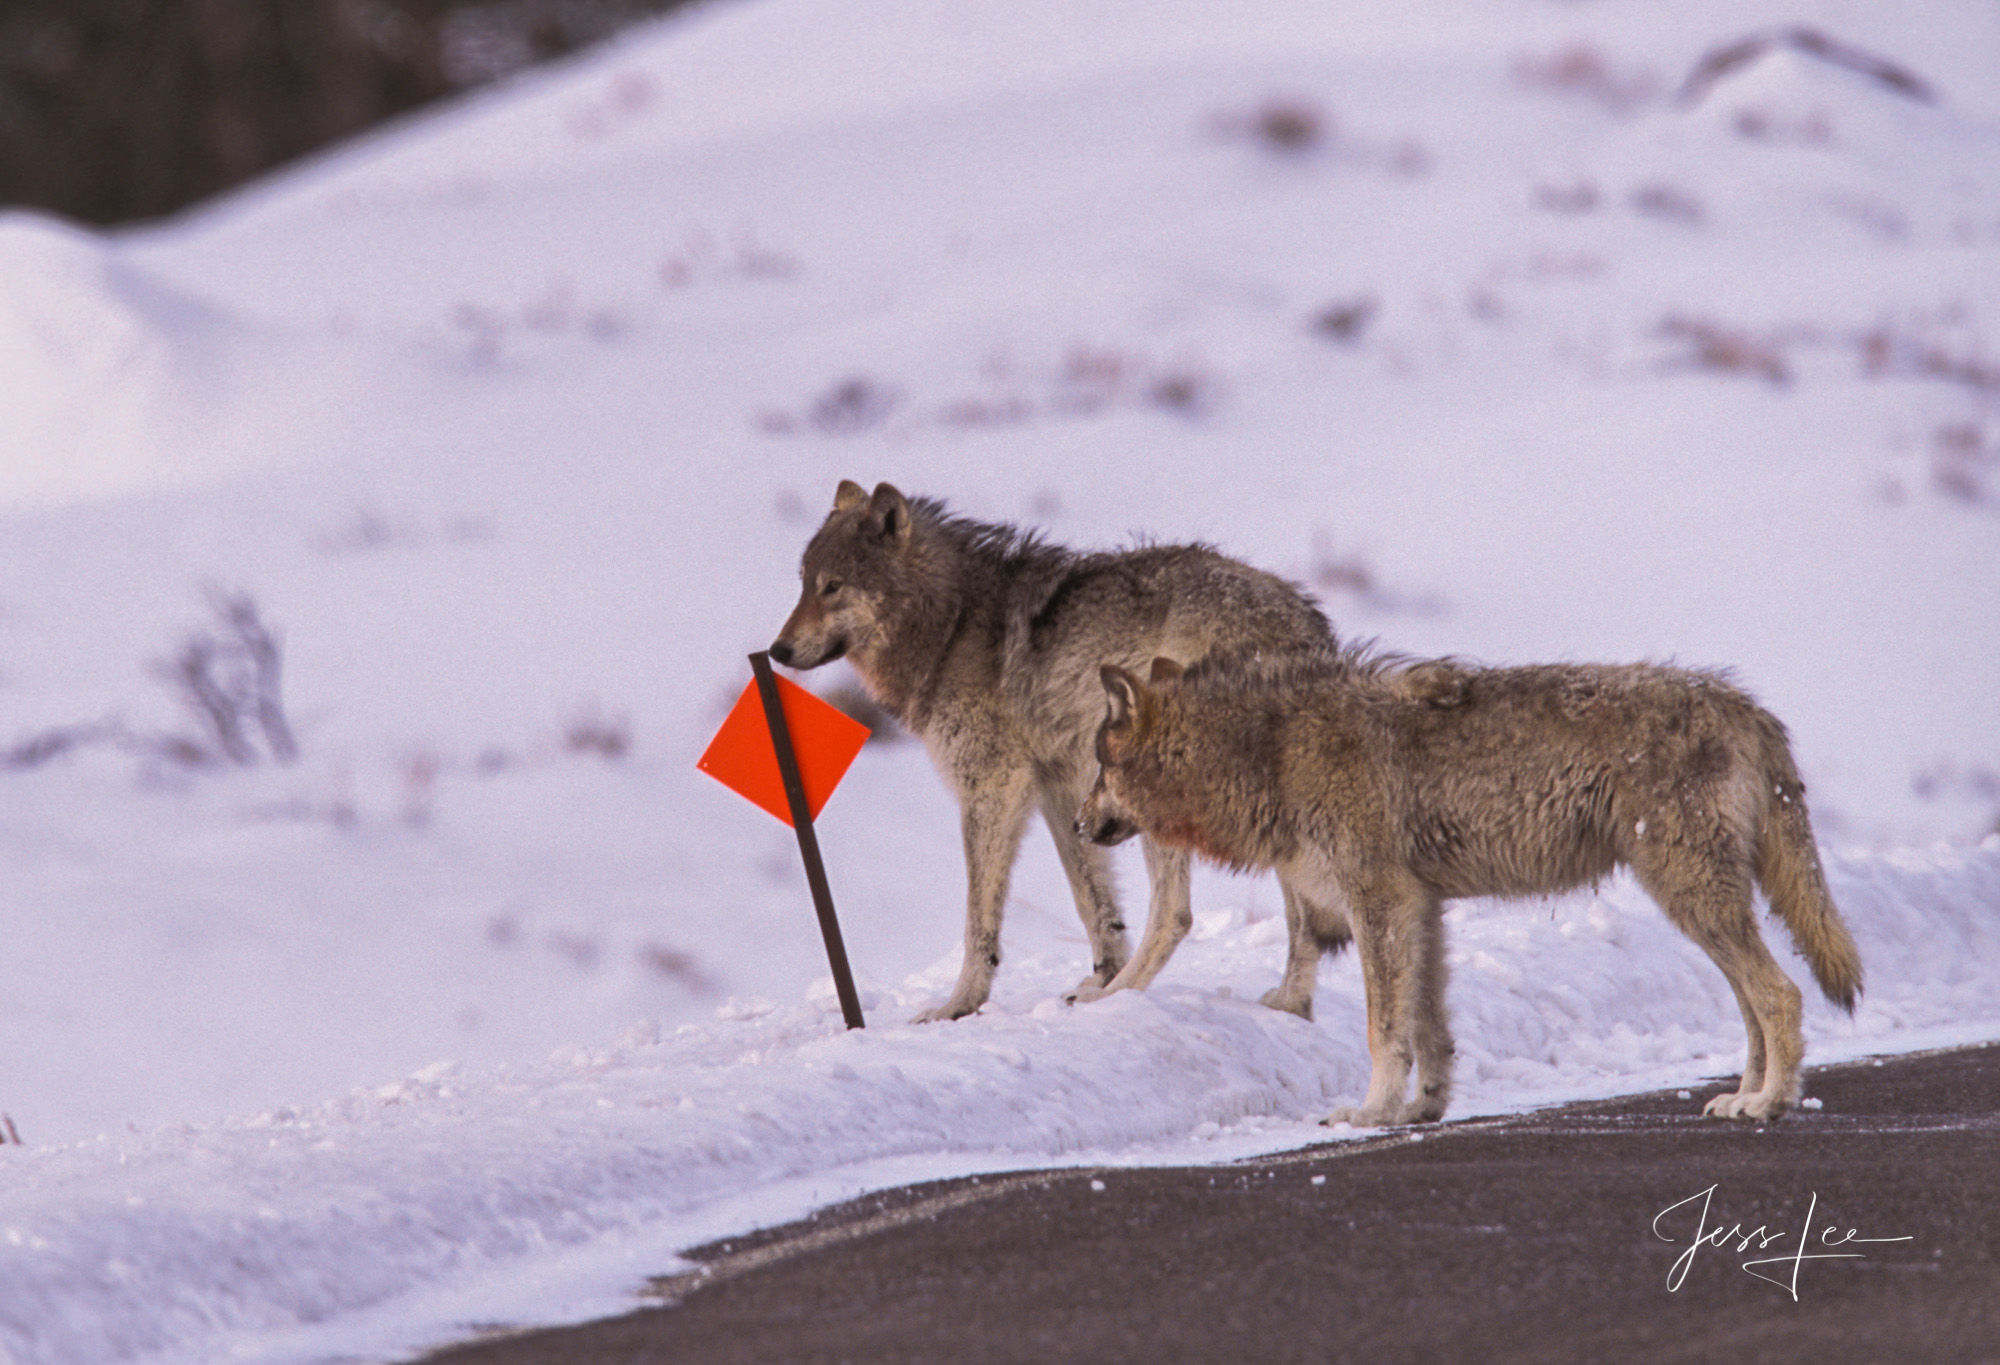 Yellowstone Wolf, winter, cowboy, free, horse, predator, wild, wolves, pack, kill, , Wolf, Yellowstone, reintroduction, hunter, hunting, jess lee, wildlife photographer, National Geographic, great, le, photo